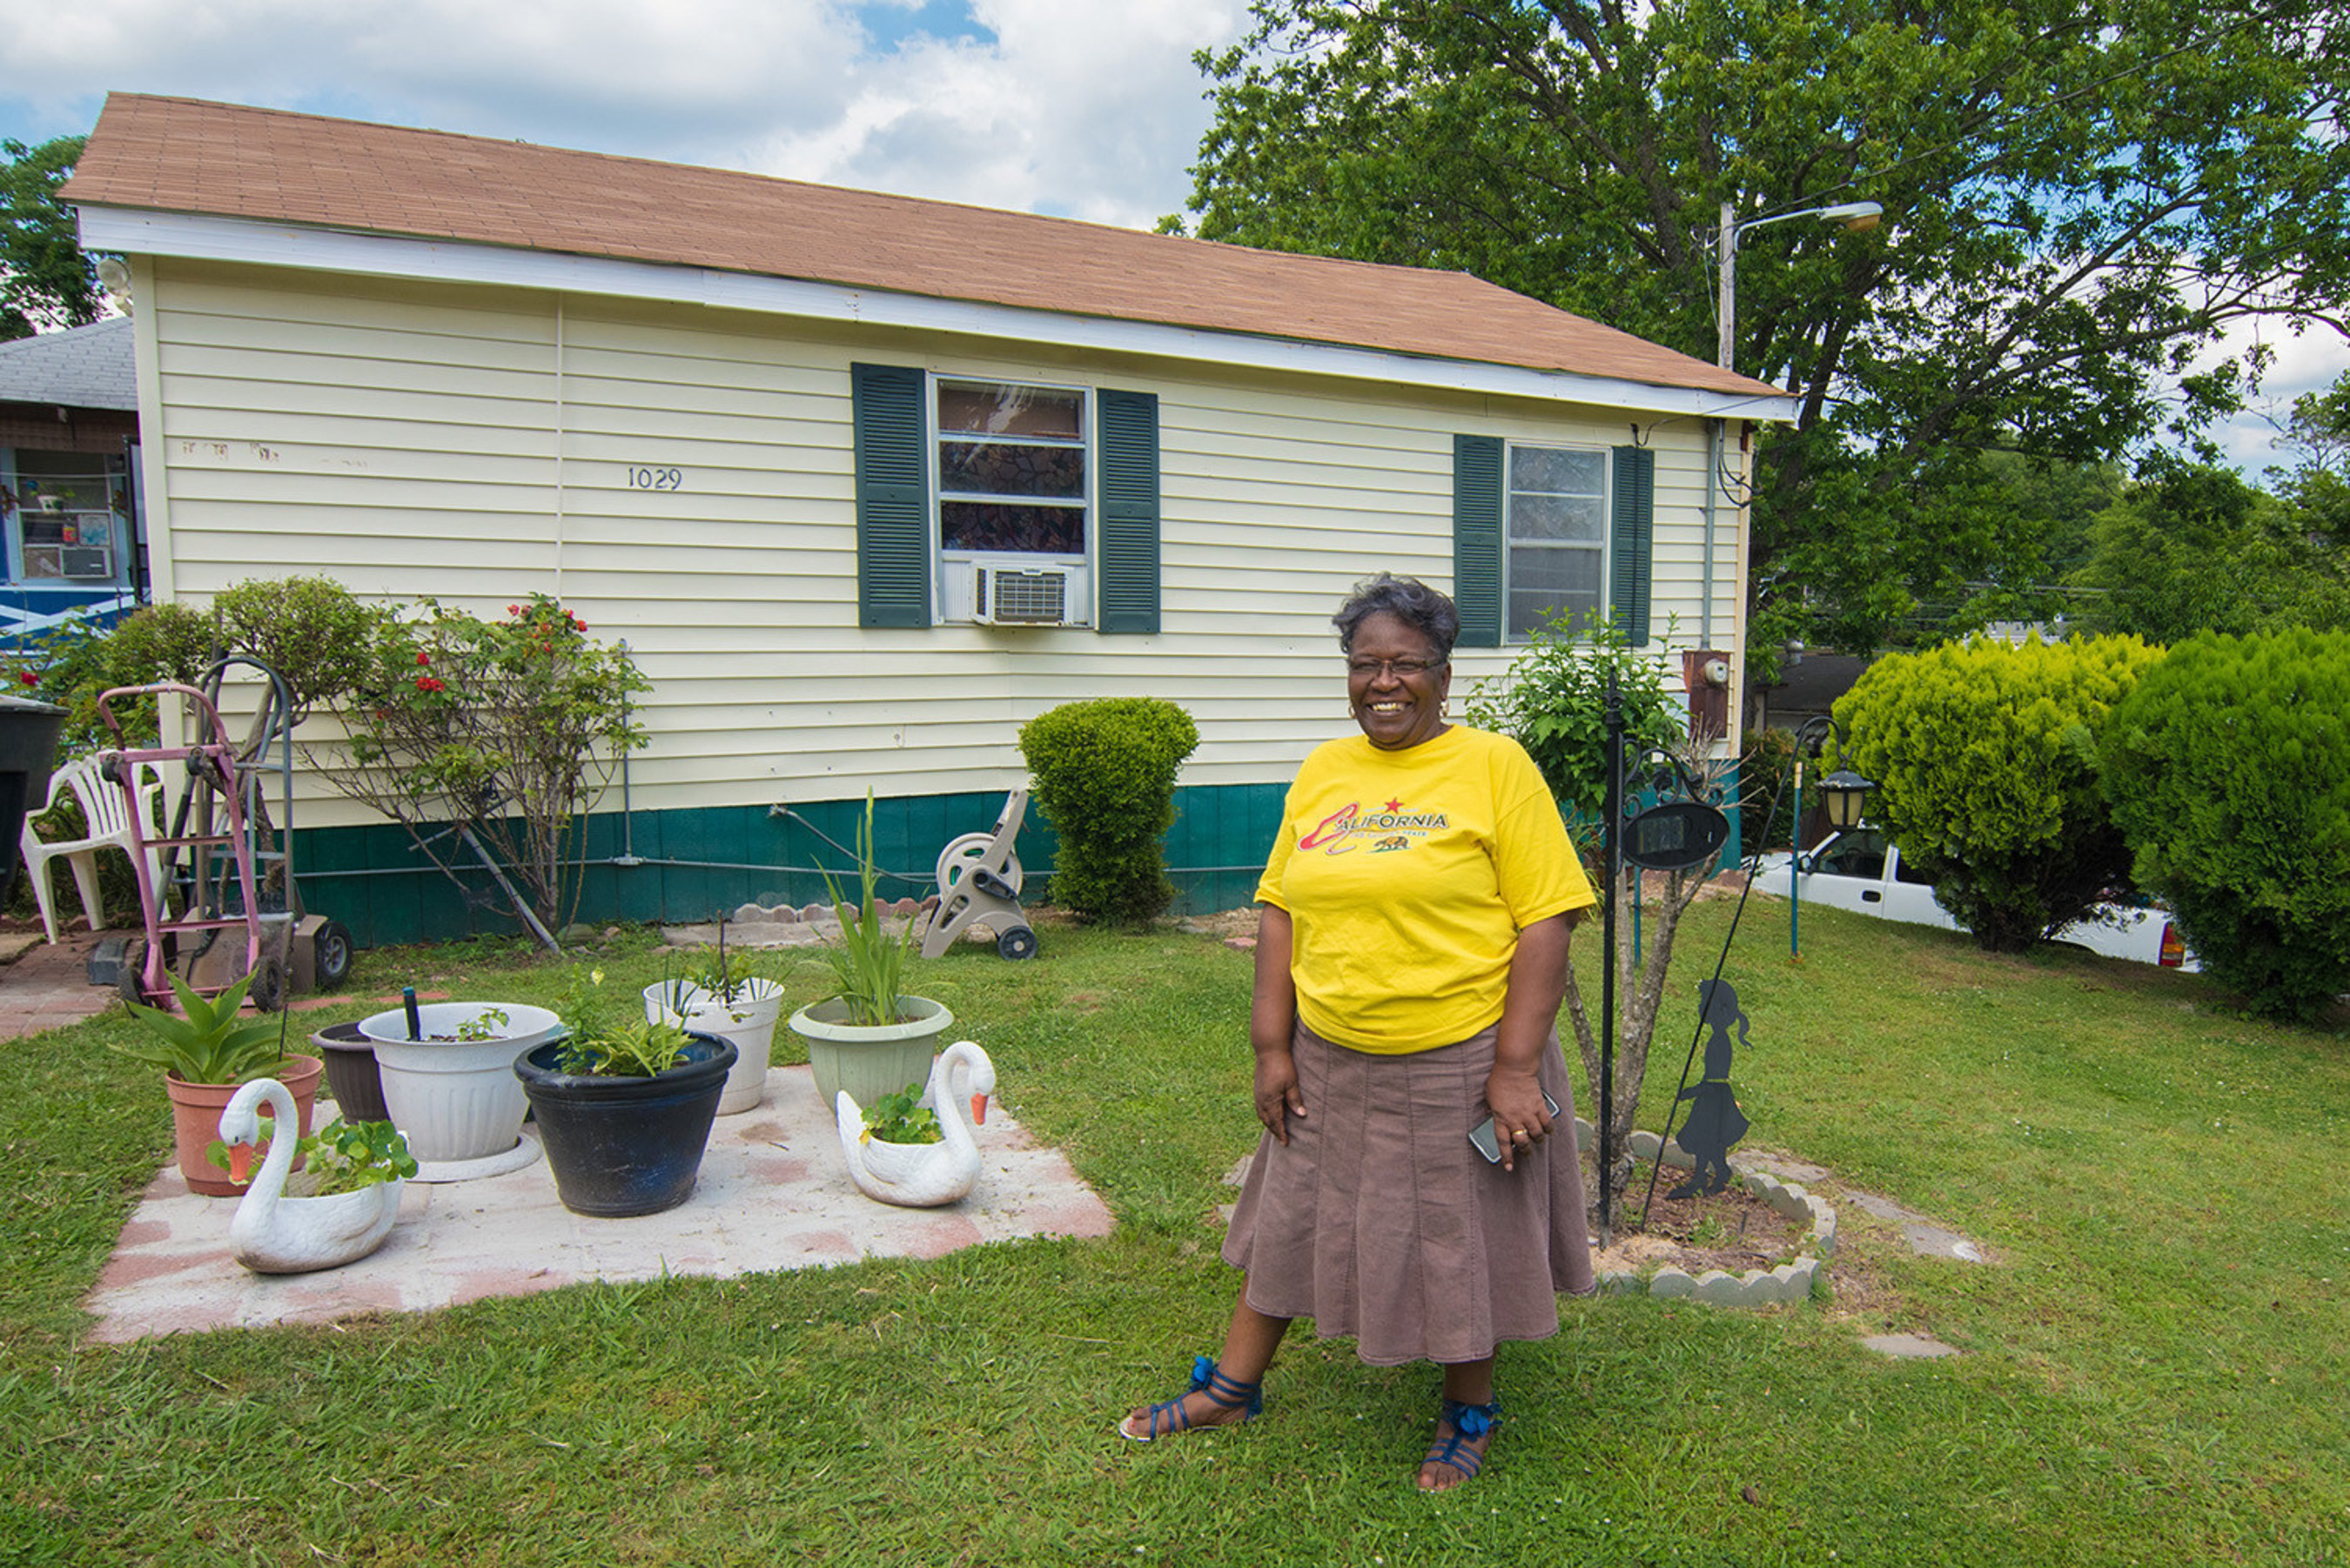 A Special Needs Assistance Program grant from FHLB Dallas and RiverHills Bank helped Julia James repair the house she has called home for 34 years.